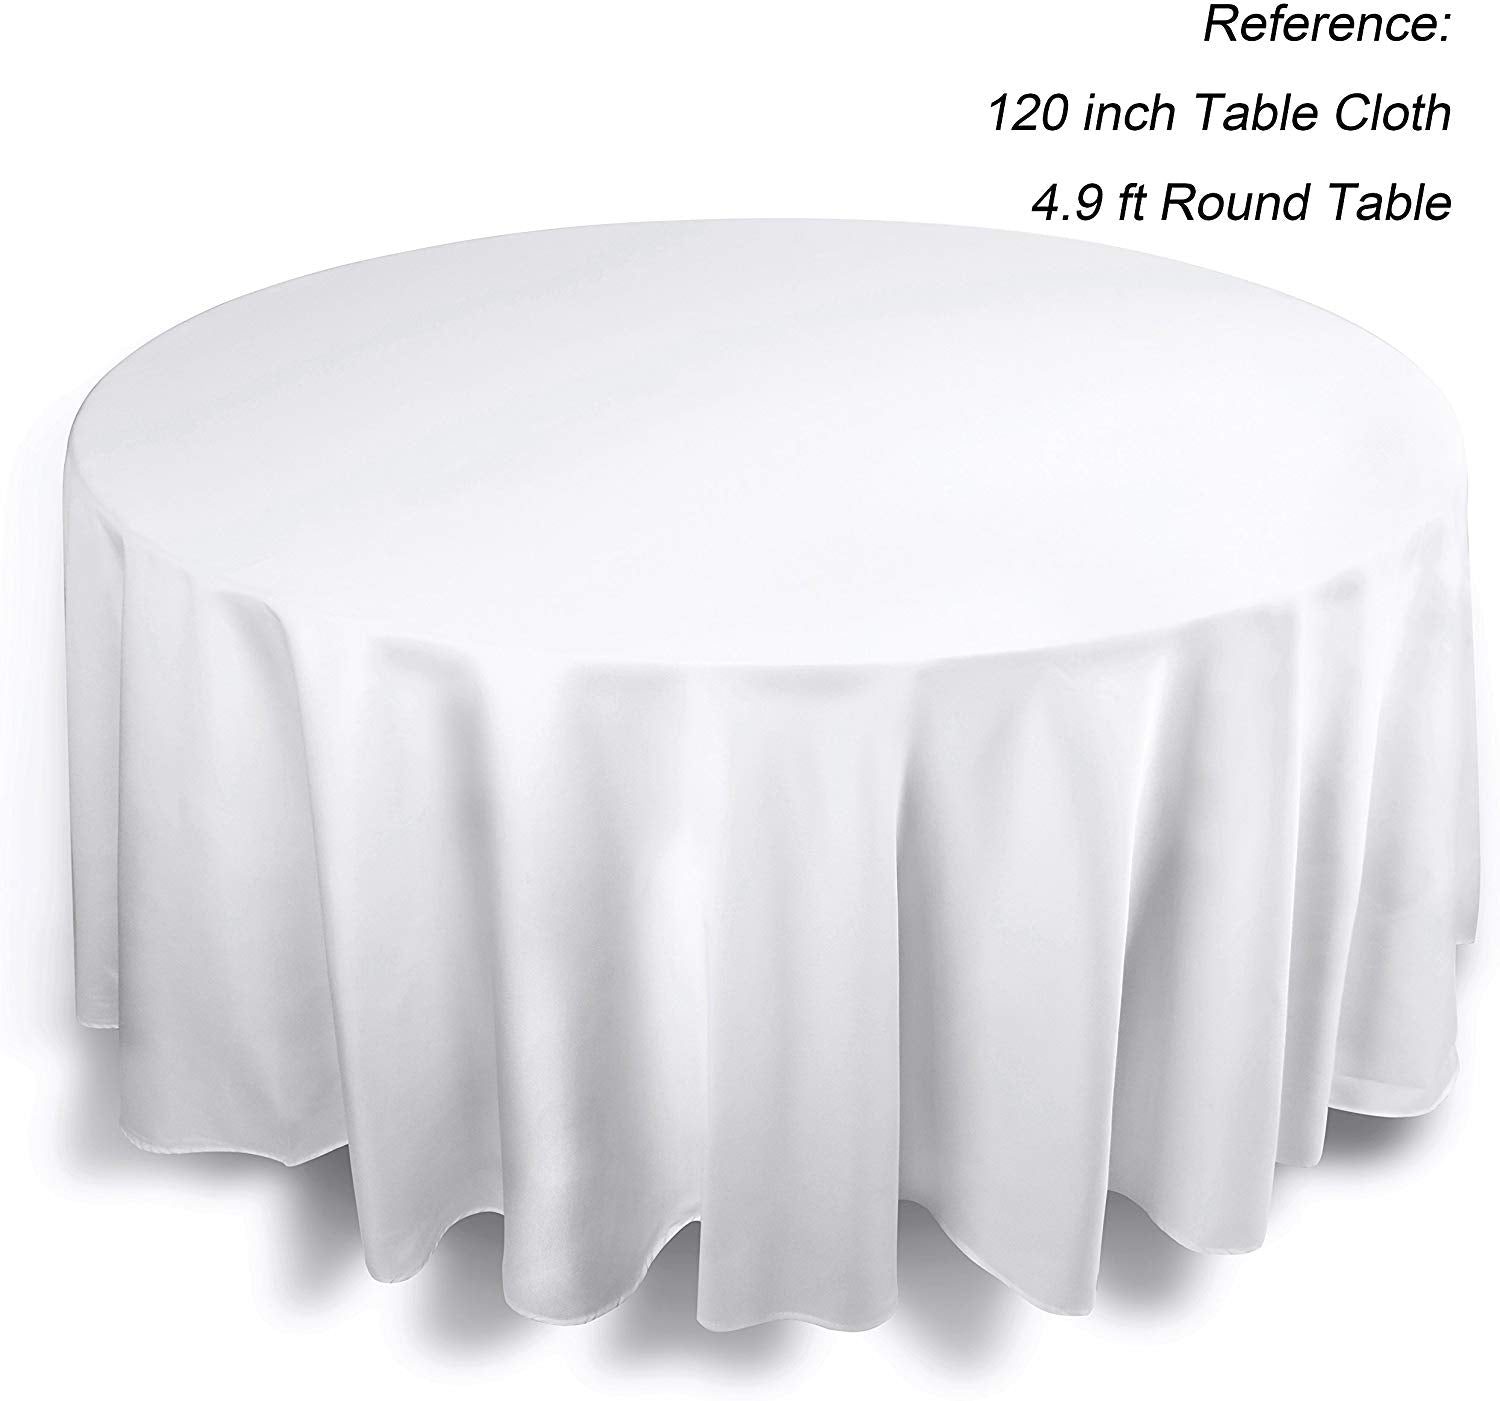 EMART Round Tablecloth, 120 inch Diameter White 100% Polyester Banquet (6 Pack)